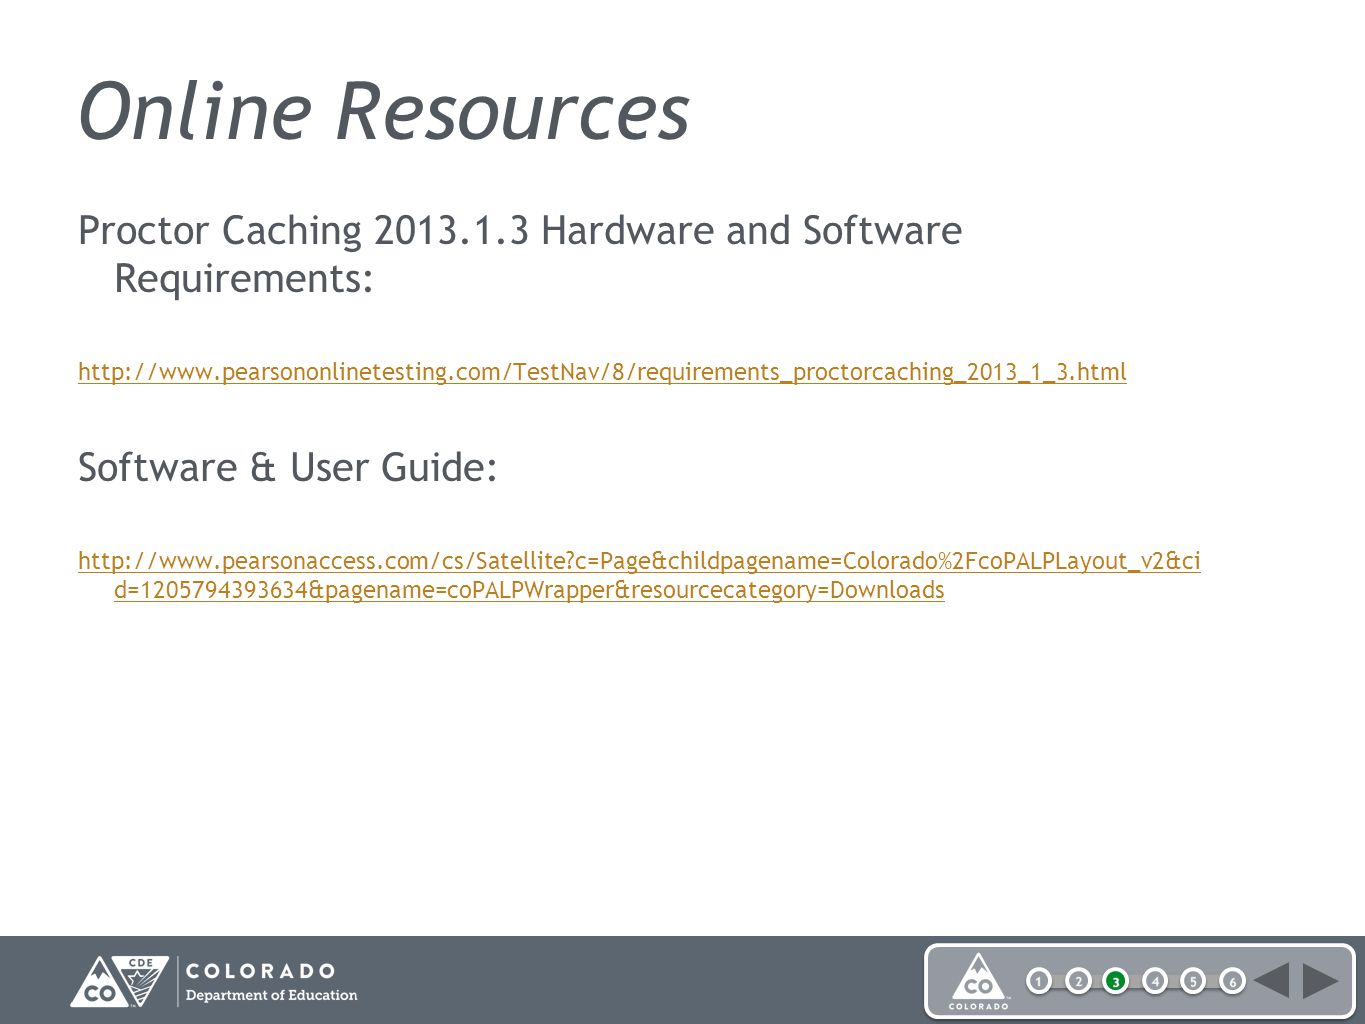 Online Resources Proctor Caching 2013.1.3 Hardware and Software Requirements: http://www.pearsononlinetesting.com/TestNav/8/requirements_proctorcaching_2013_1_3.html Software & User Guide: http://www.pearsonaccess.com/cs/Satellite c=Page&childpagename=Colorado%2FcoPALPLayout_v2&ci d=1205794393634&pagename=coPALPWrapper&resourcecategory=Downloads